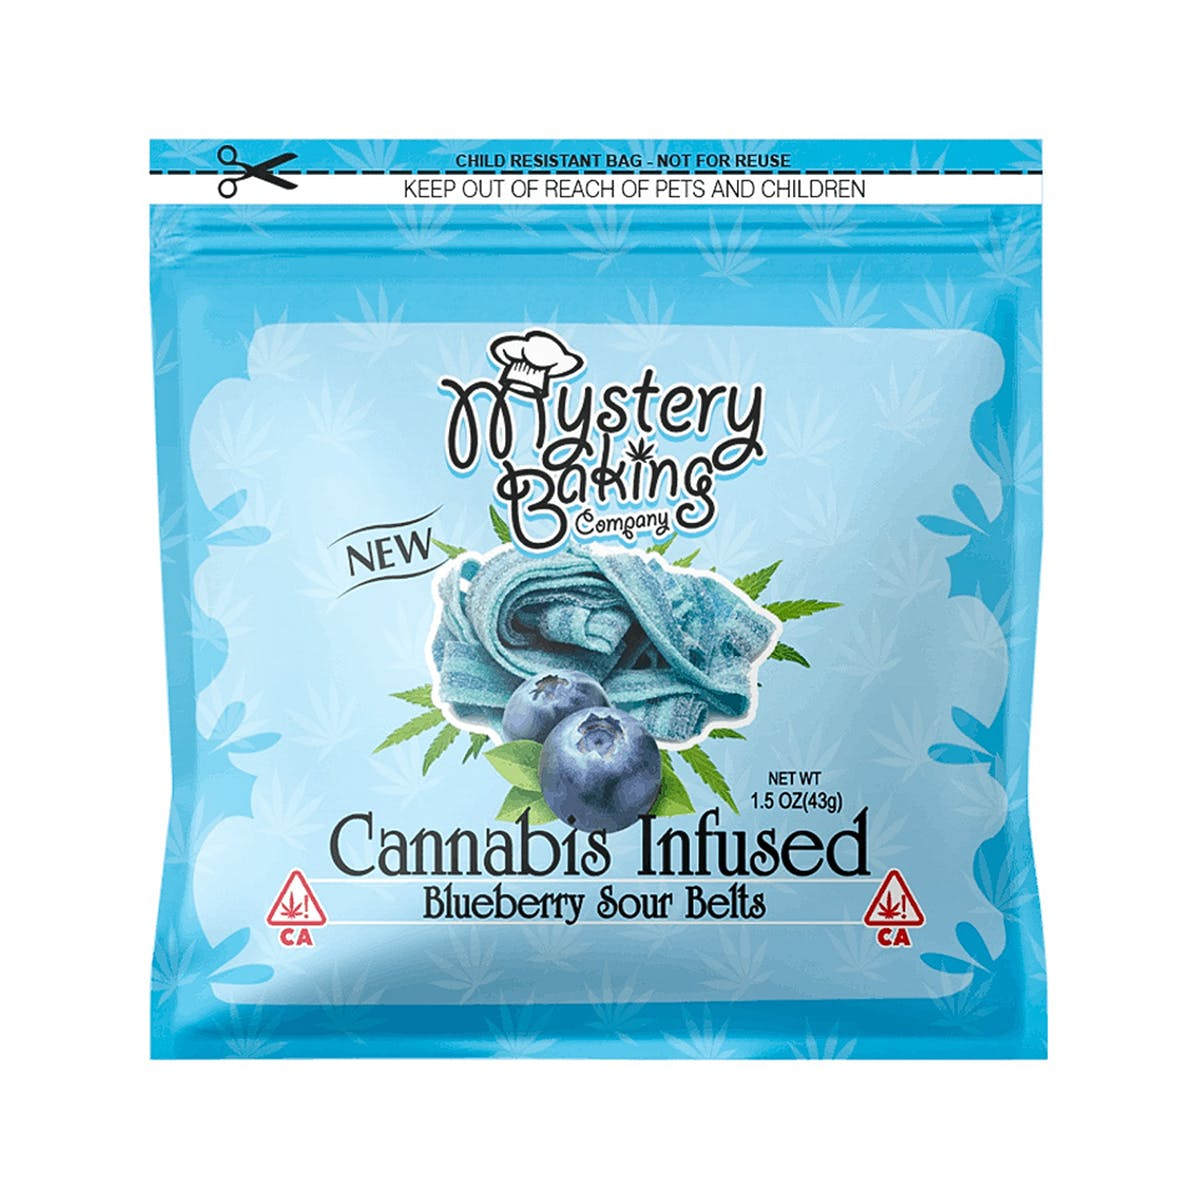 marijuana-dispensaries-pasadena-cannabis-collective-pcc-in-pasadena-blueberry-sour-belts-100mg